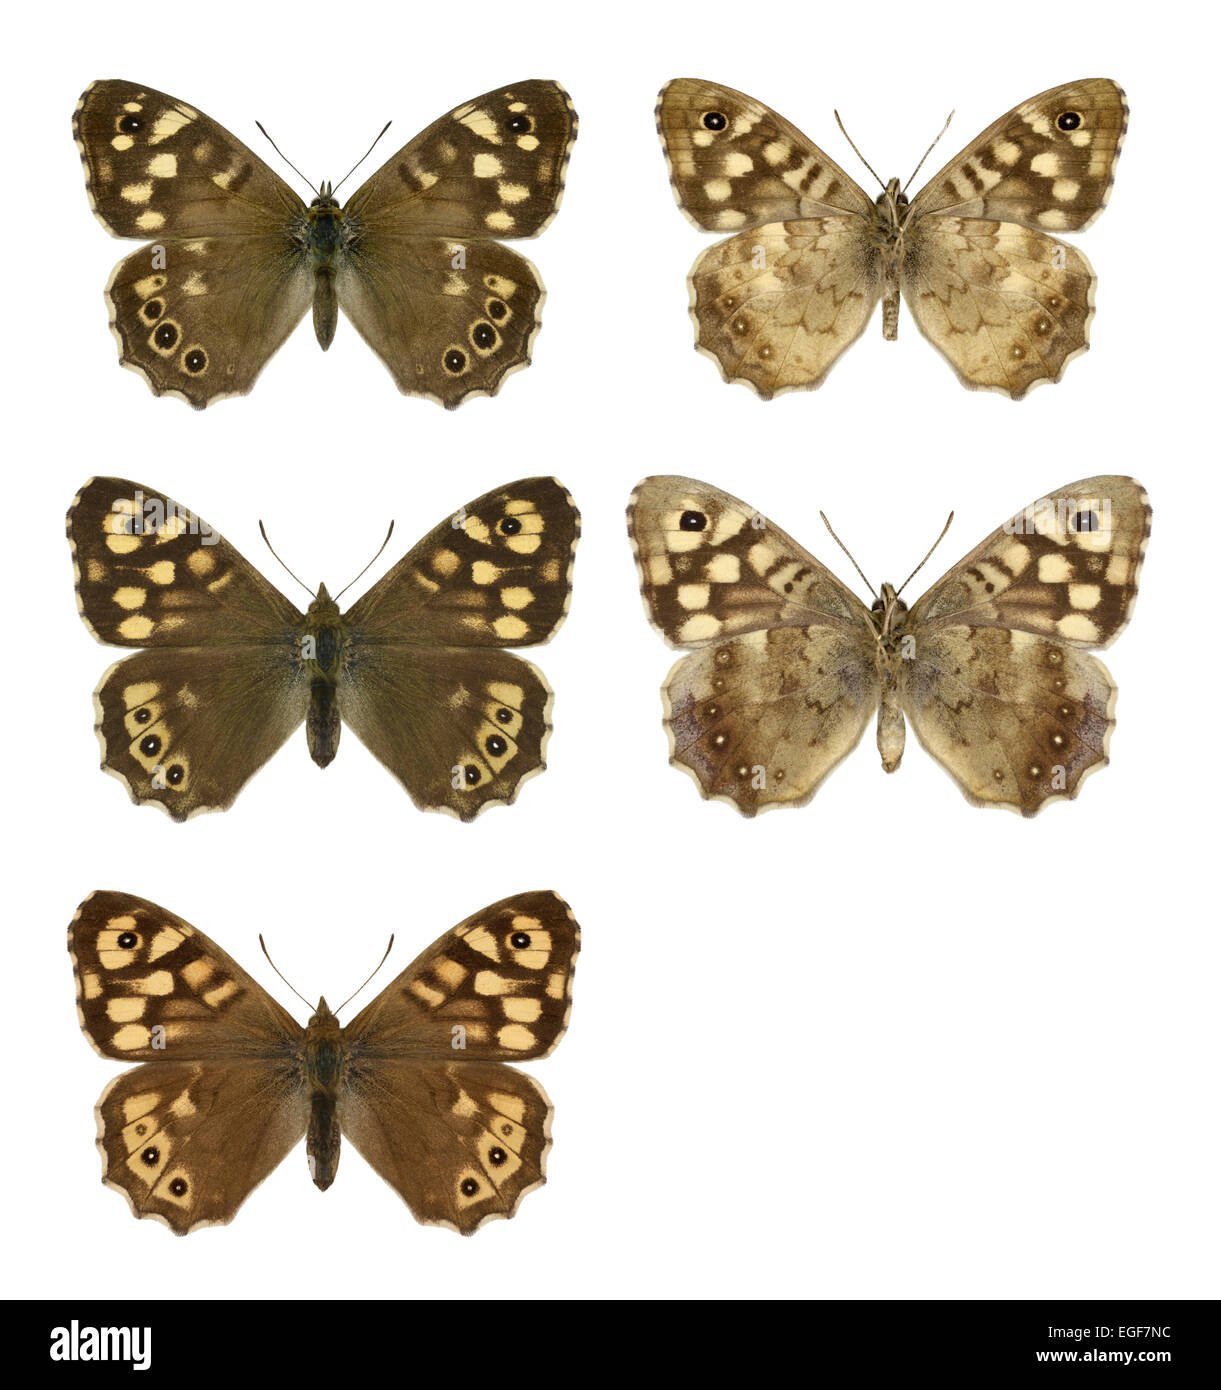 Speckled Wood - Pararge aegeria - male (top row) - female (middle row) - ssp. insula from Scilly (bottom row). - Stock Image